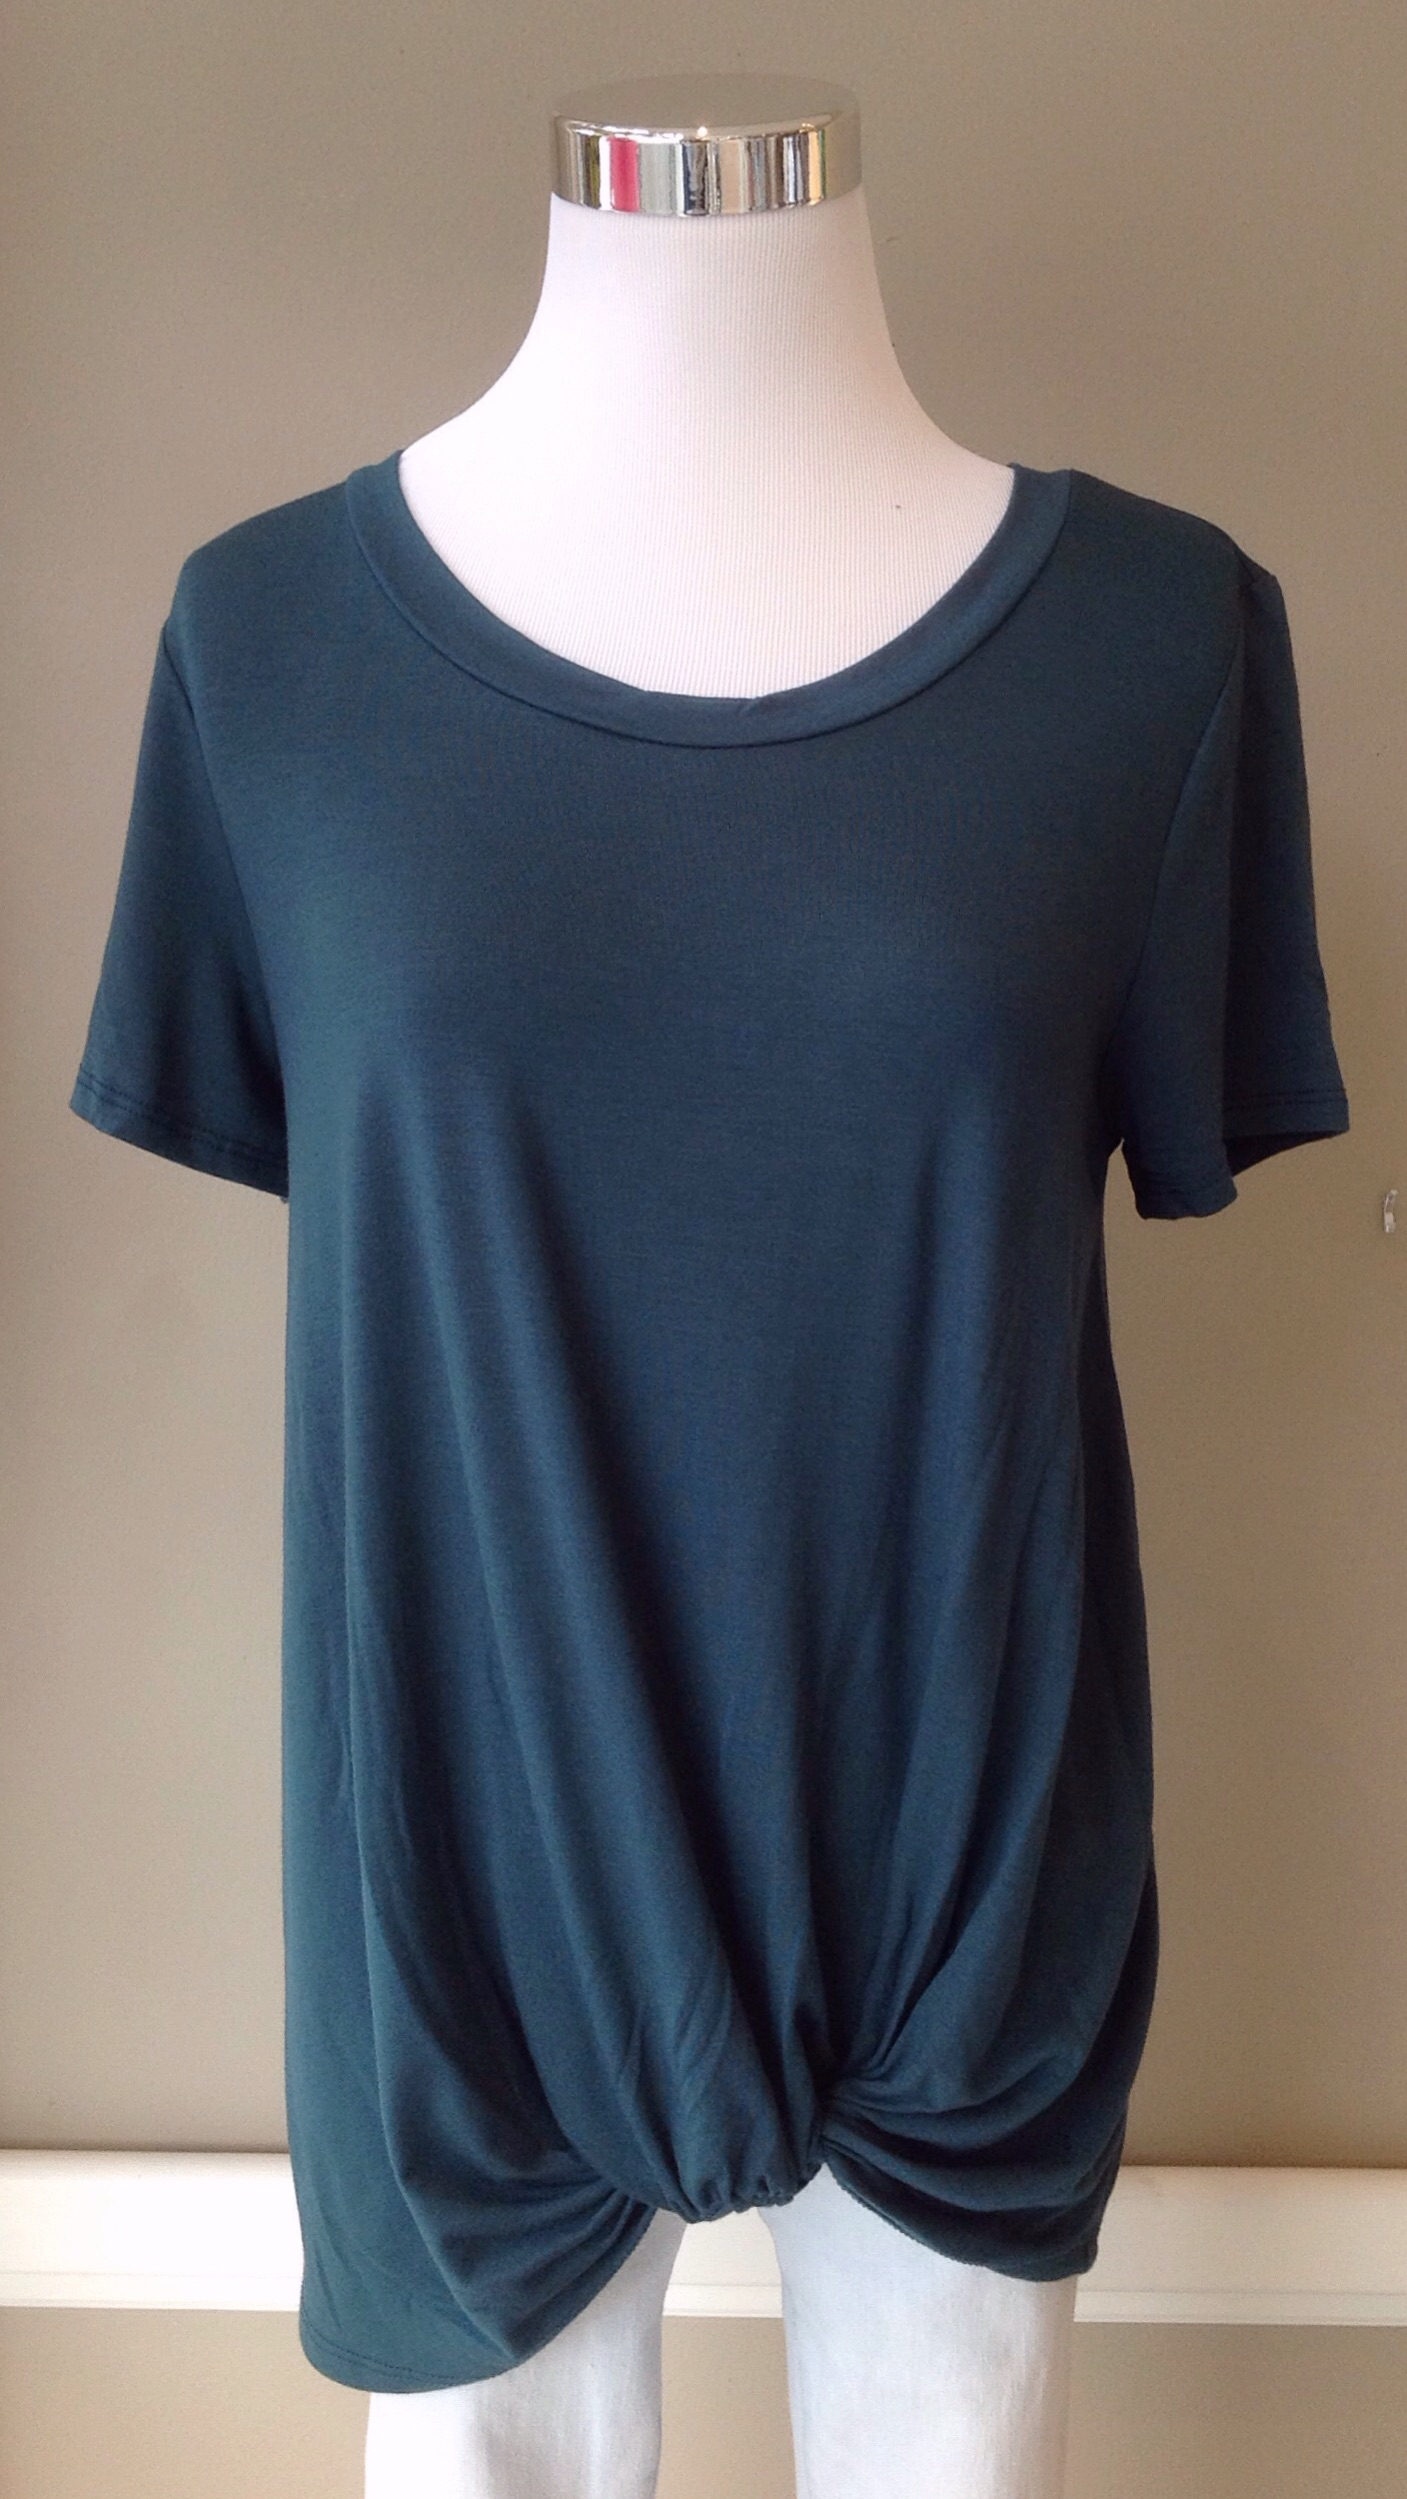 More emerald draped front tees, $28